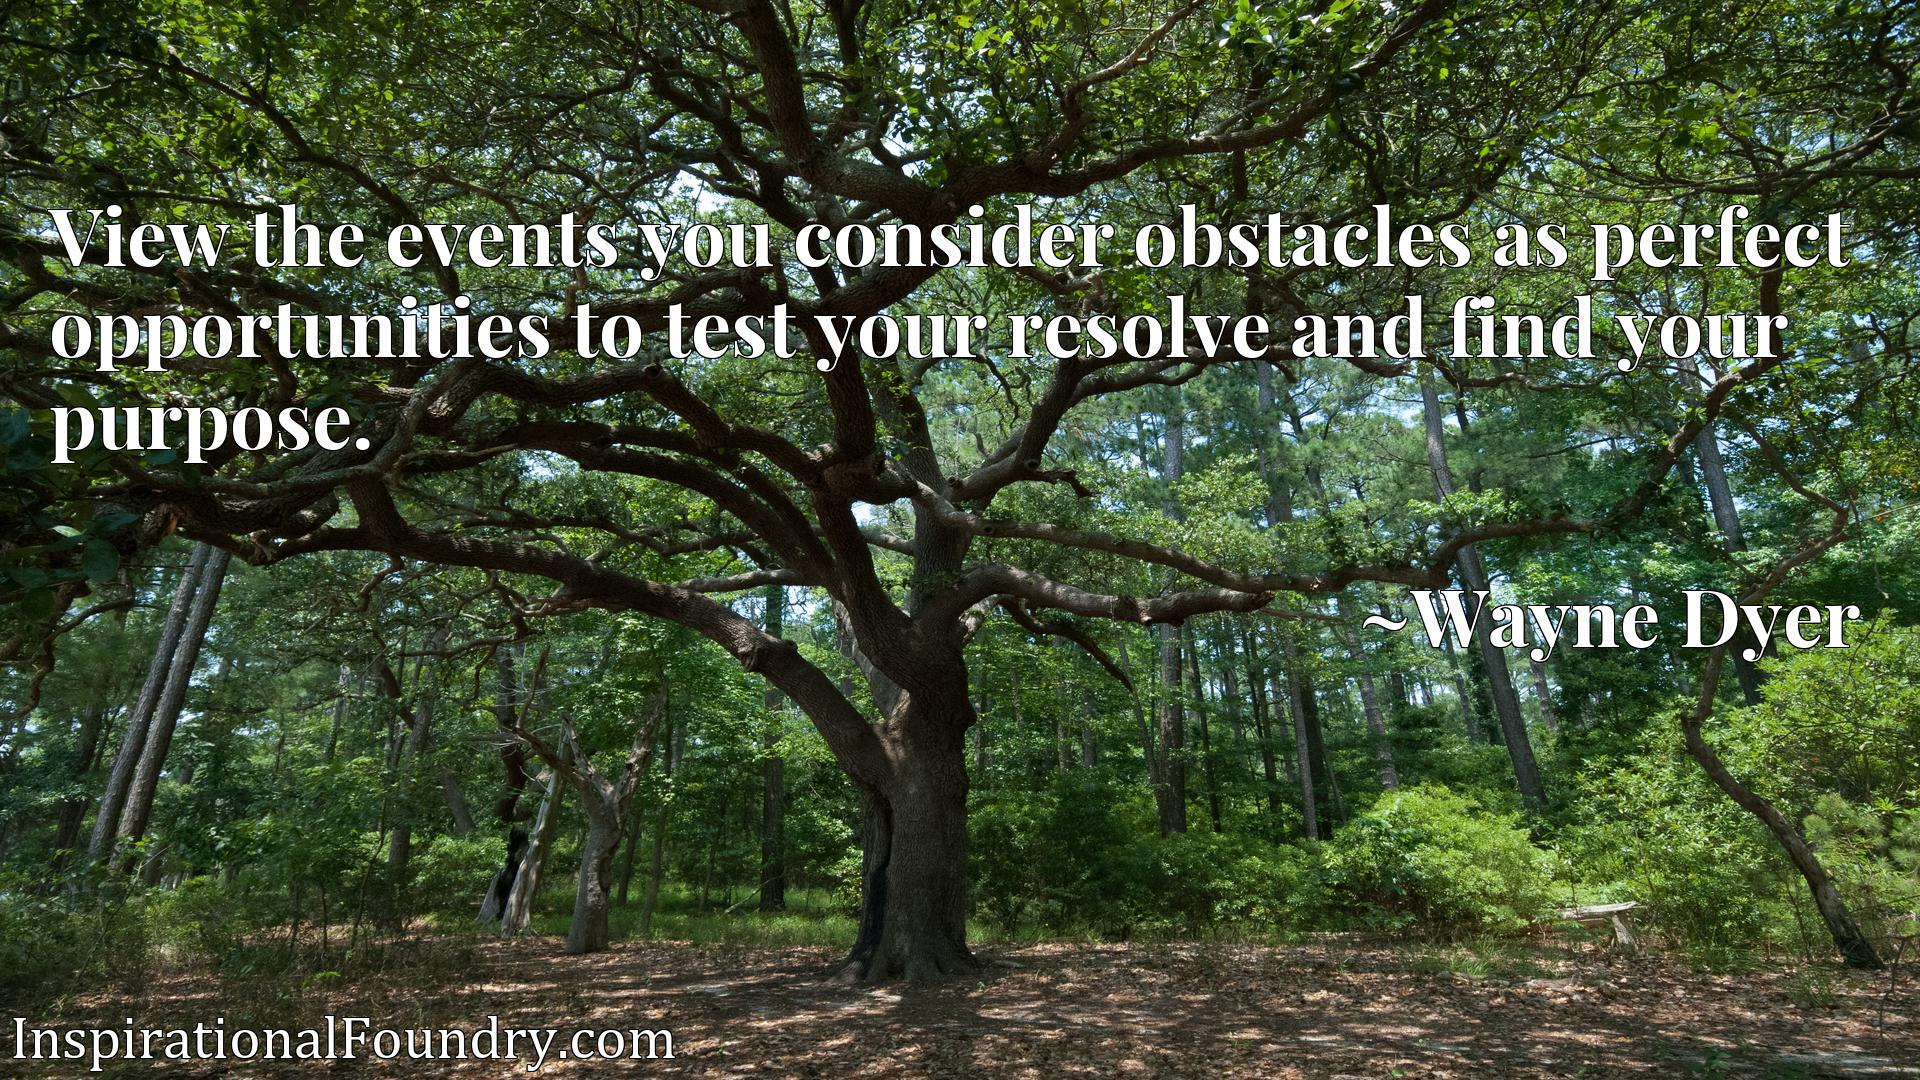 View the events you consider obstacles as perfect opportunities to test your resolve and find your purpose.